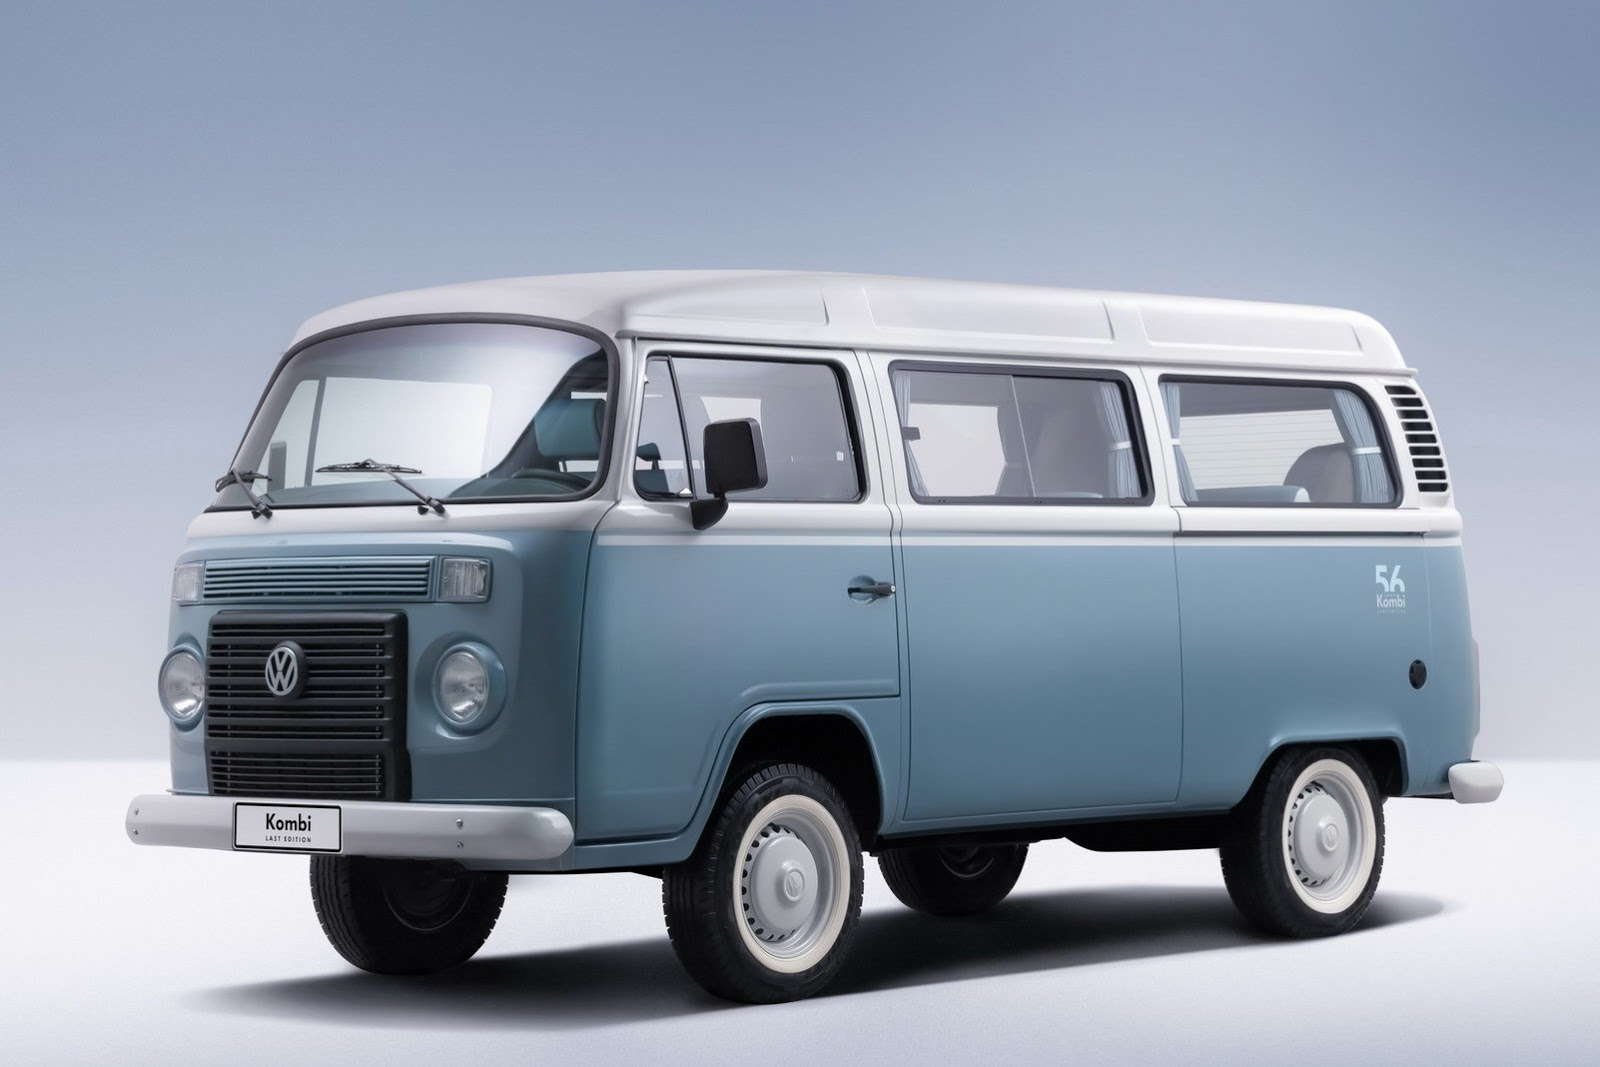 34166649a5 Brazil - Iconic Volkswagen Kombi could live on